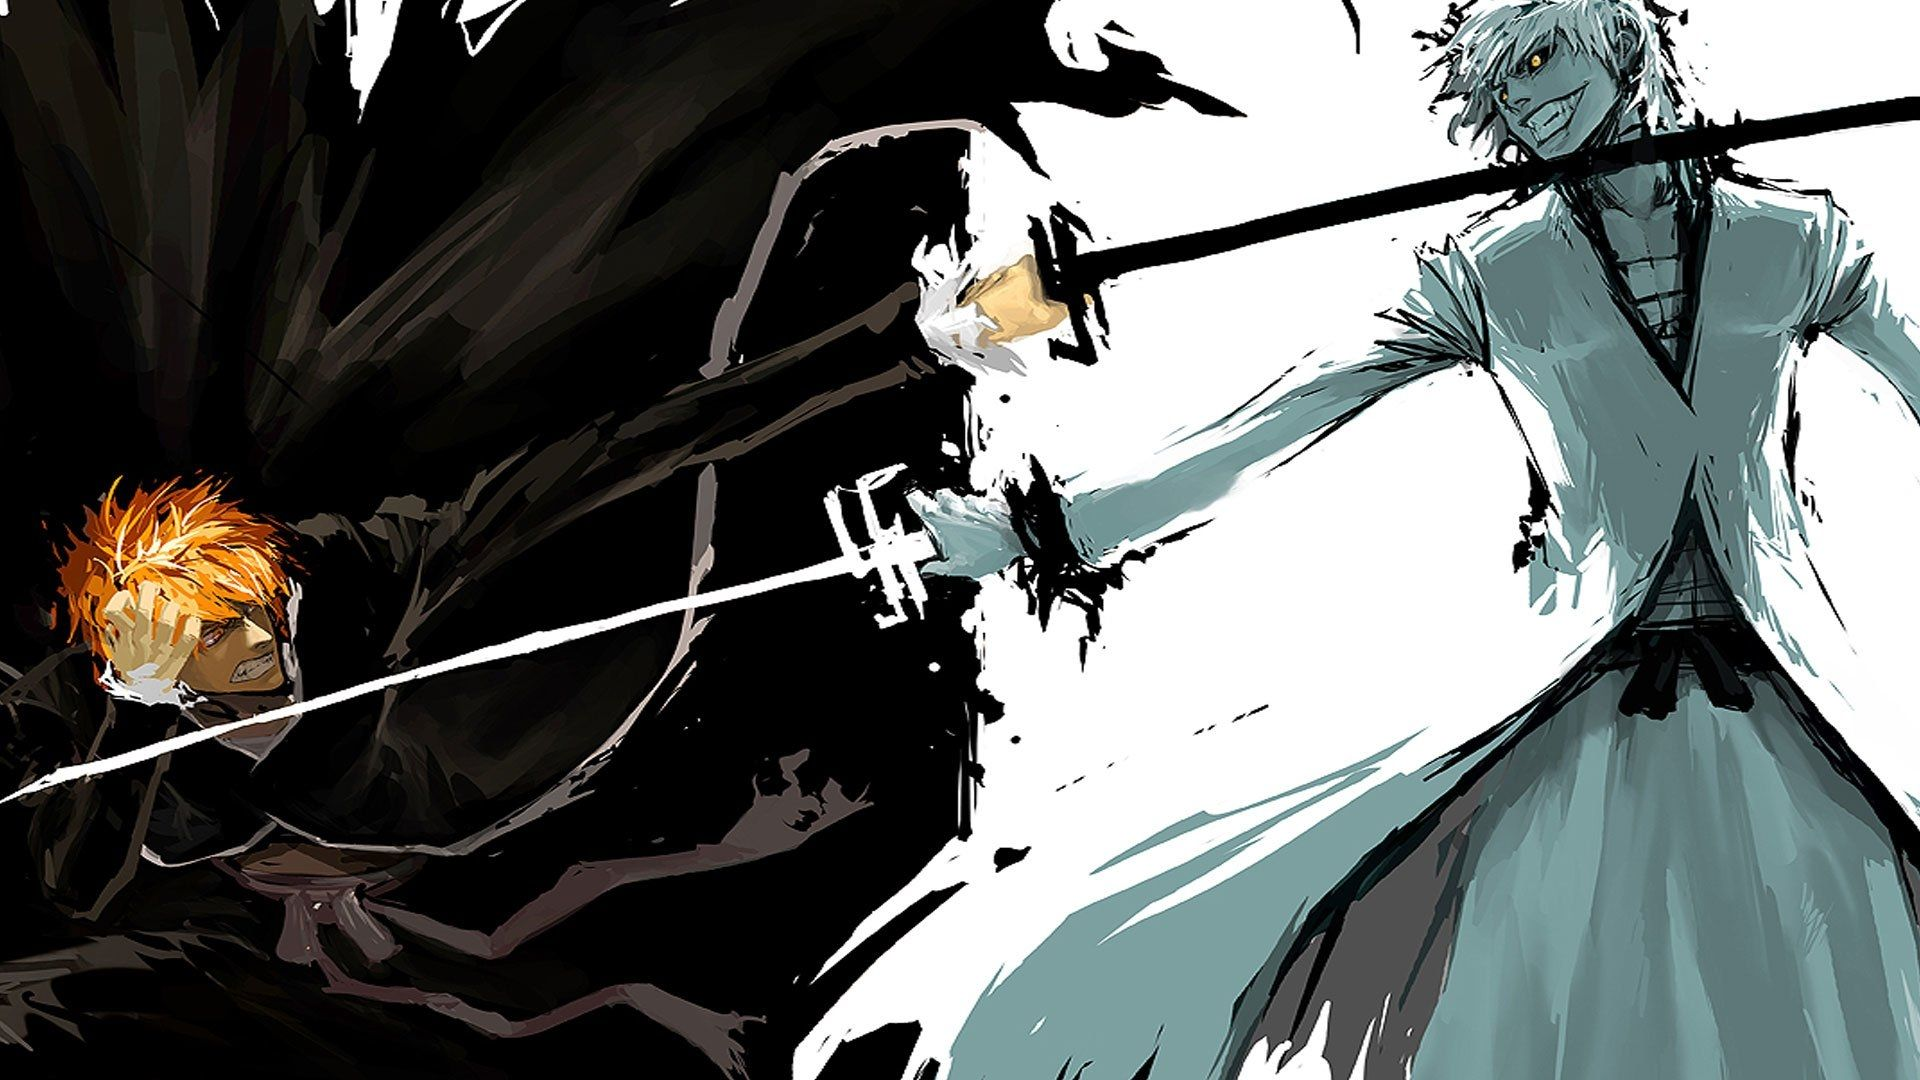 Bleach Anime Desktop Wallpapers Top Free Bleach Anime Desktop Backgrounds Wallpaperaccess